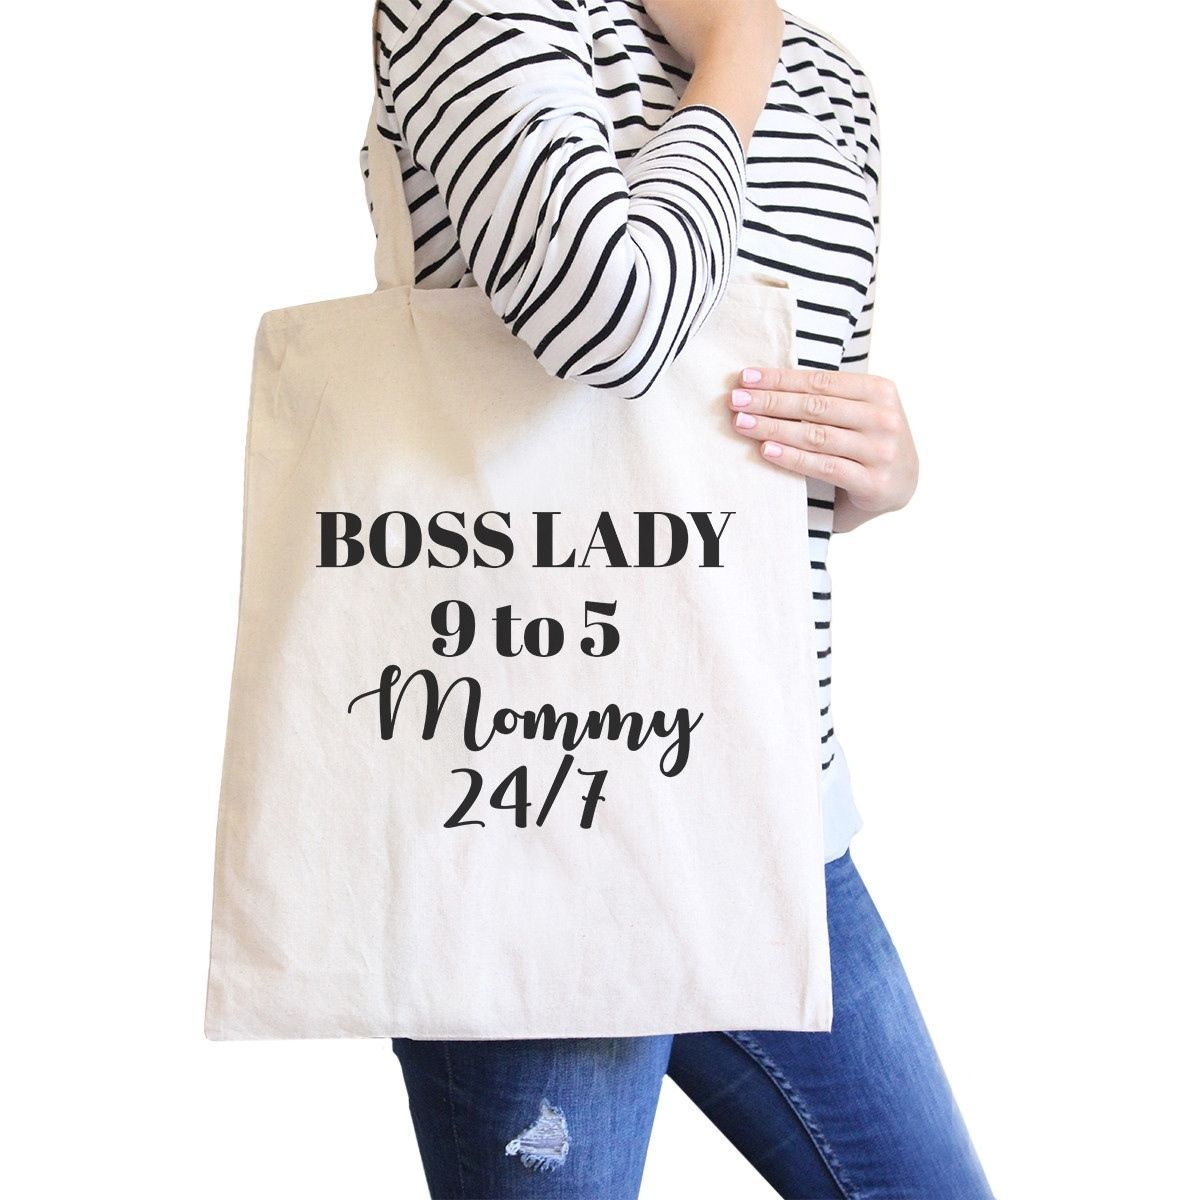 Primary image for Boss Lady Mommy Natural Canvas Bag Humorous Gifts For Bossy Moms